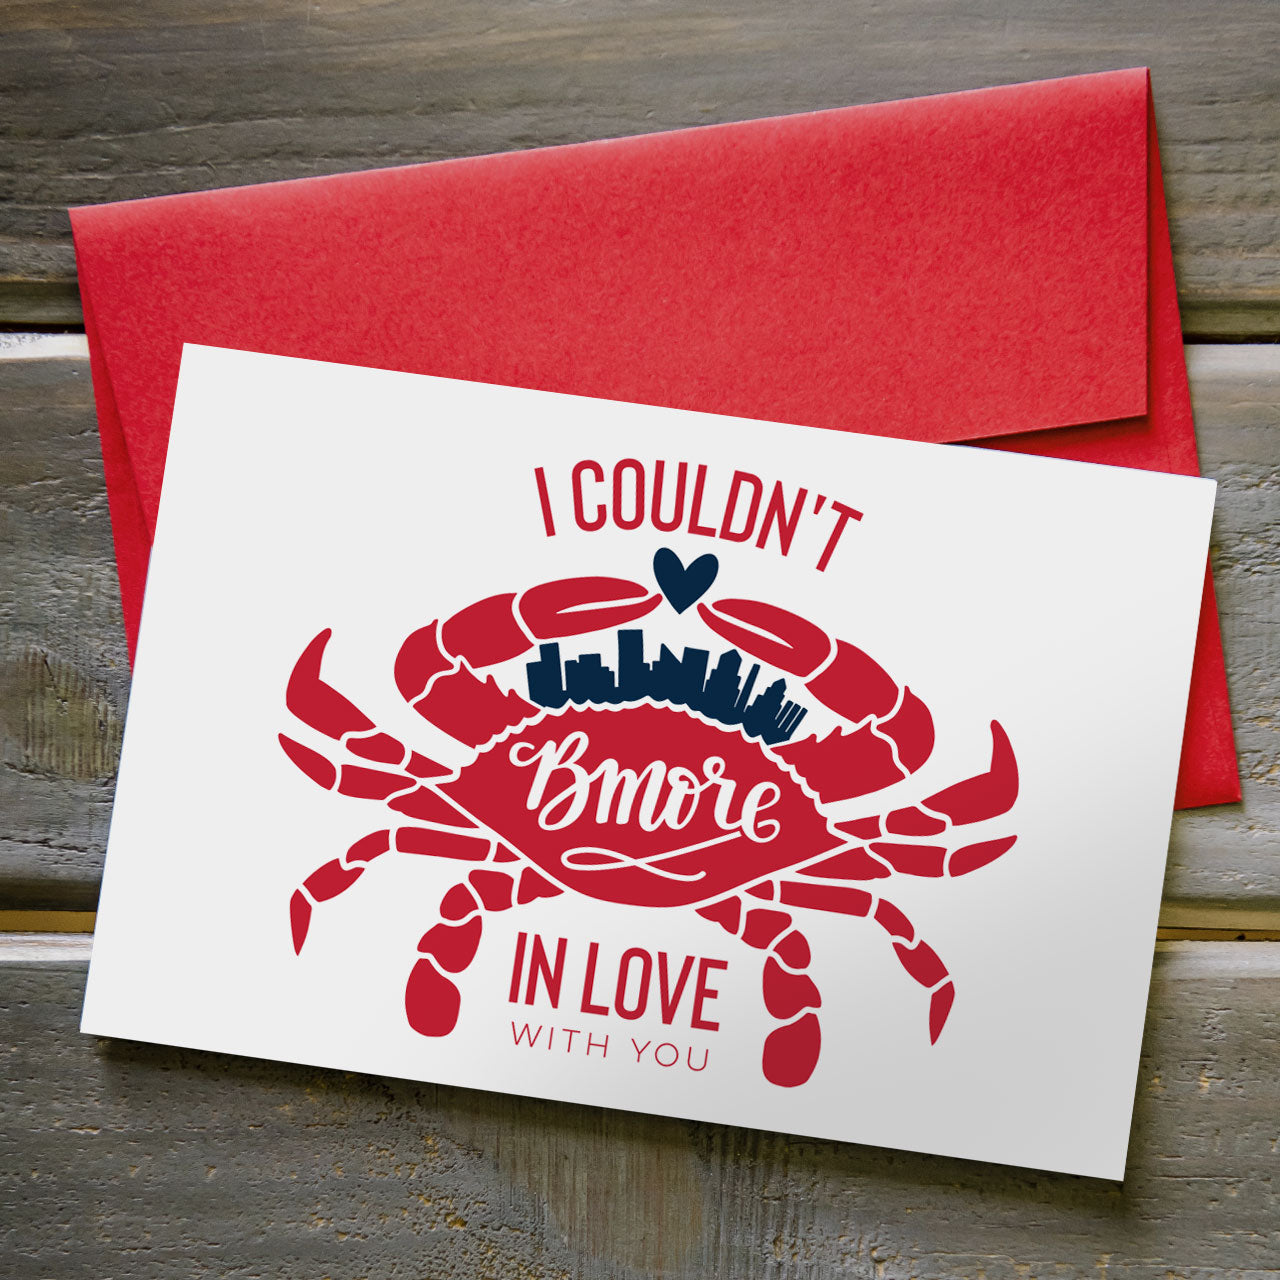 Bmore in Love - Greeting Card